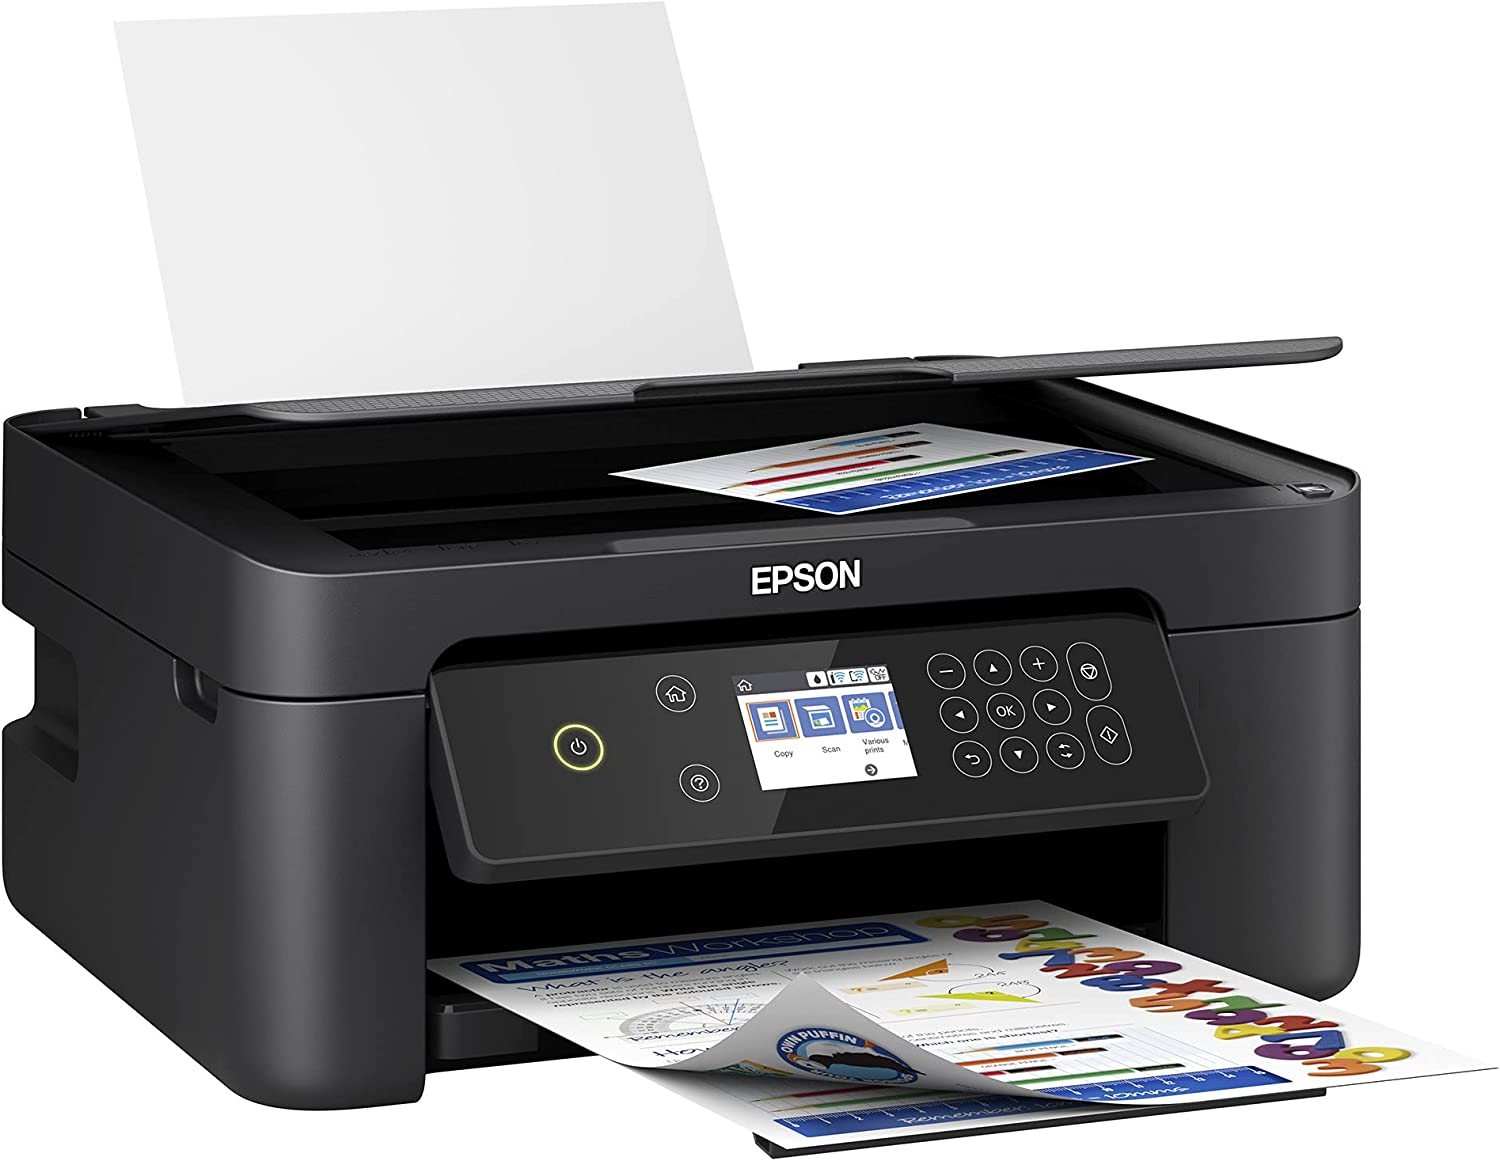 Epson Inkjet Color Printer Expression Home All in one 3-Function Printer Scanner Copier Wireless Fast Print high Accuracy dpi auto 2 Side Print